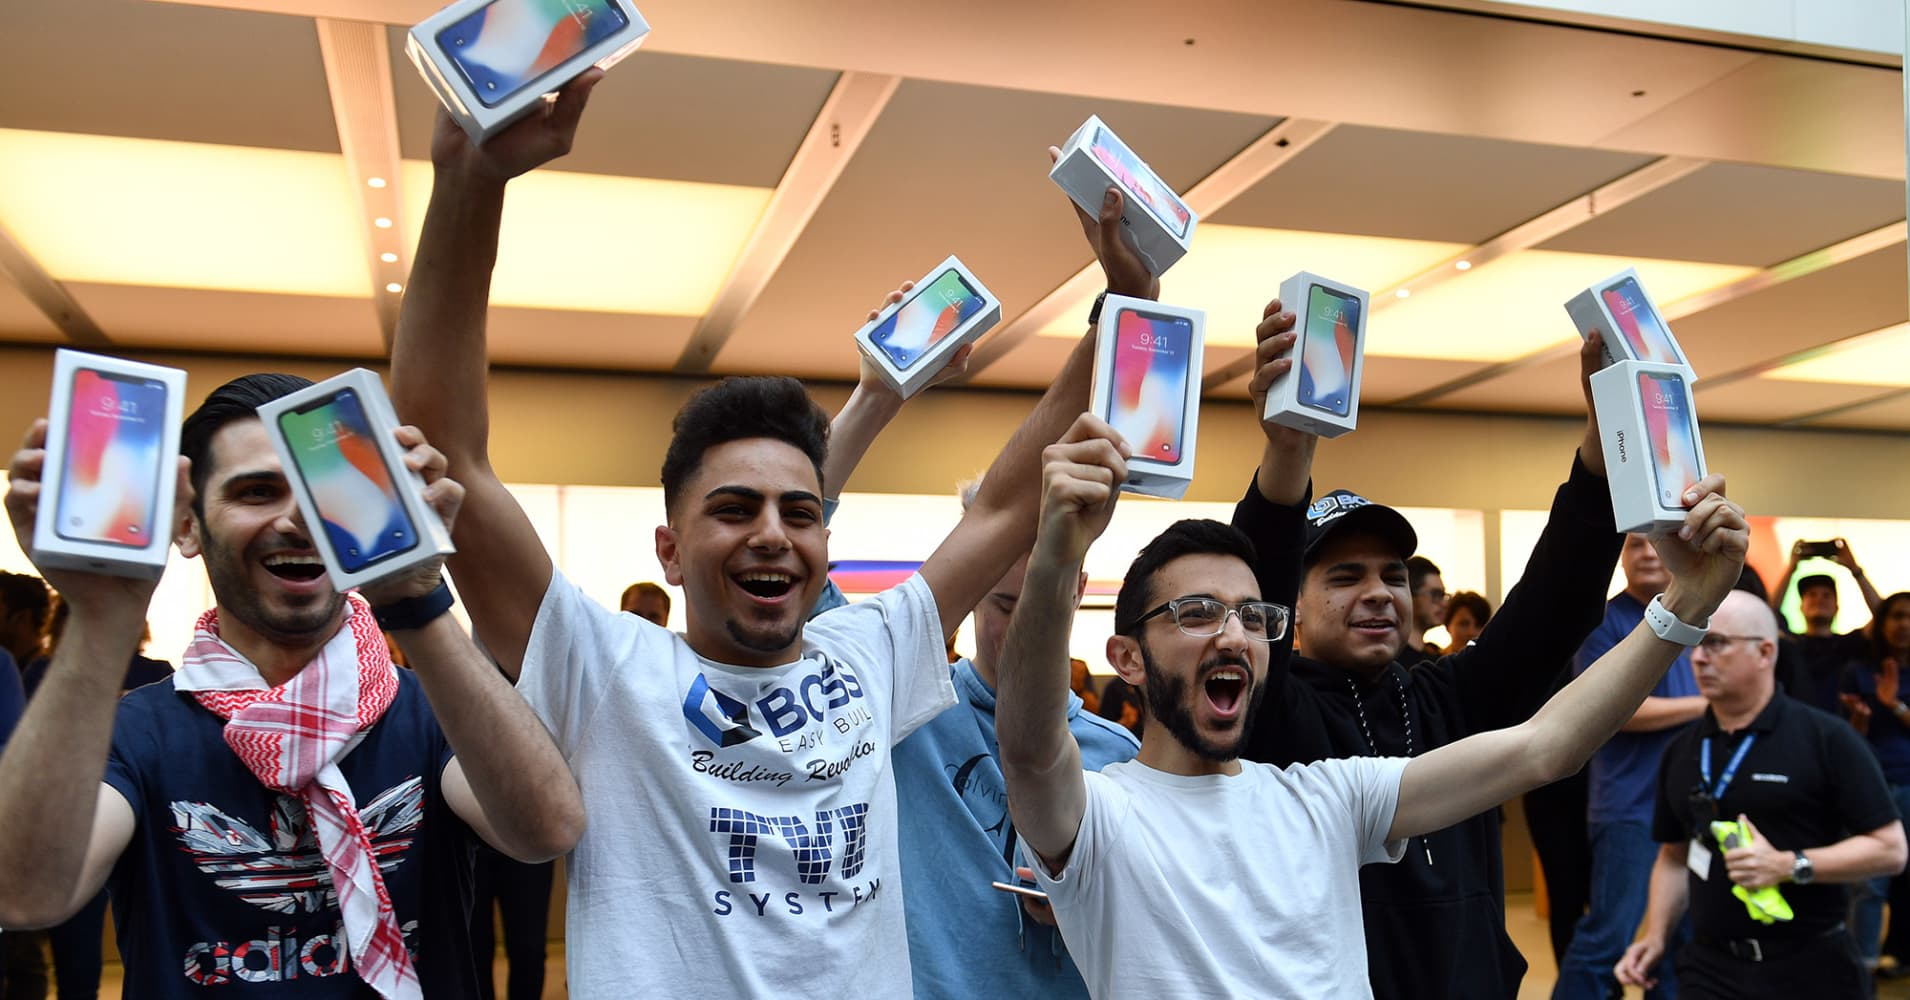 First customers display their iPhone X sets at an Apple showroom in Sydney on November 3, 2017. Apple iPhone X went for sale in Australia with long queues outside the Apple stores.